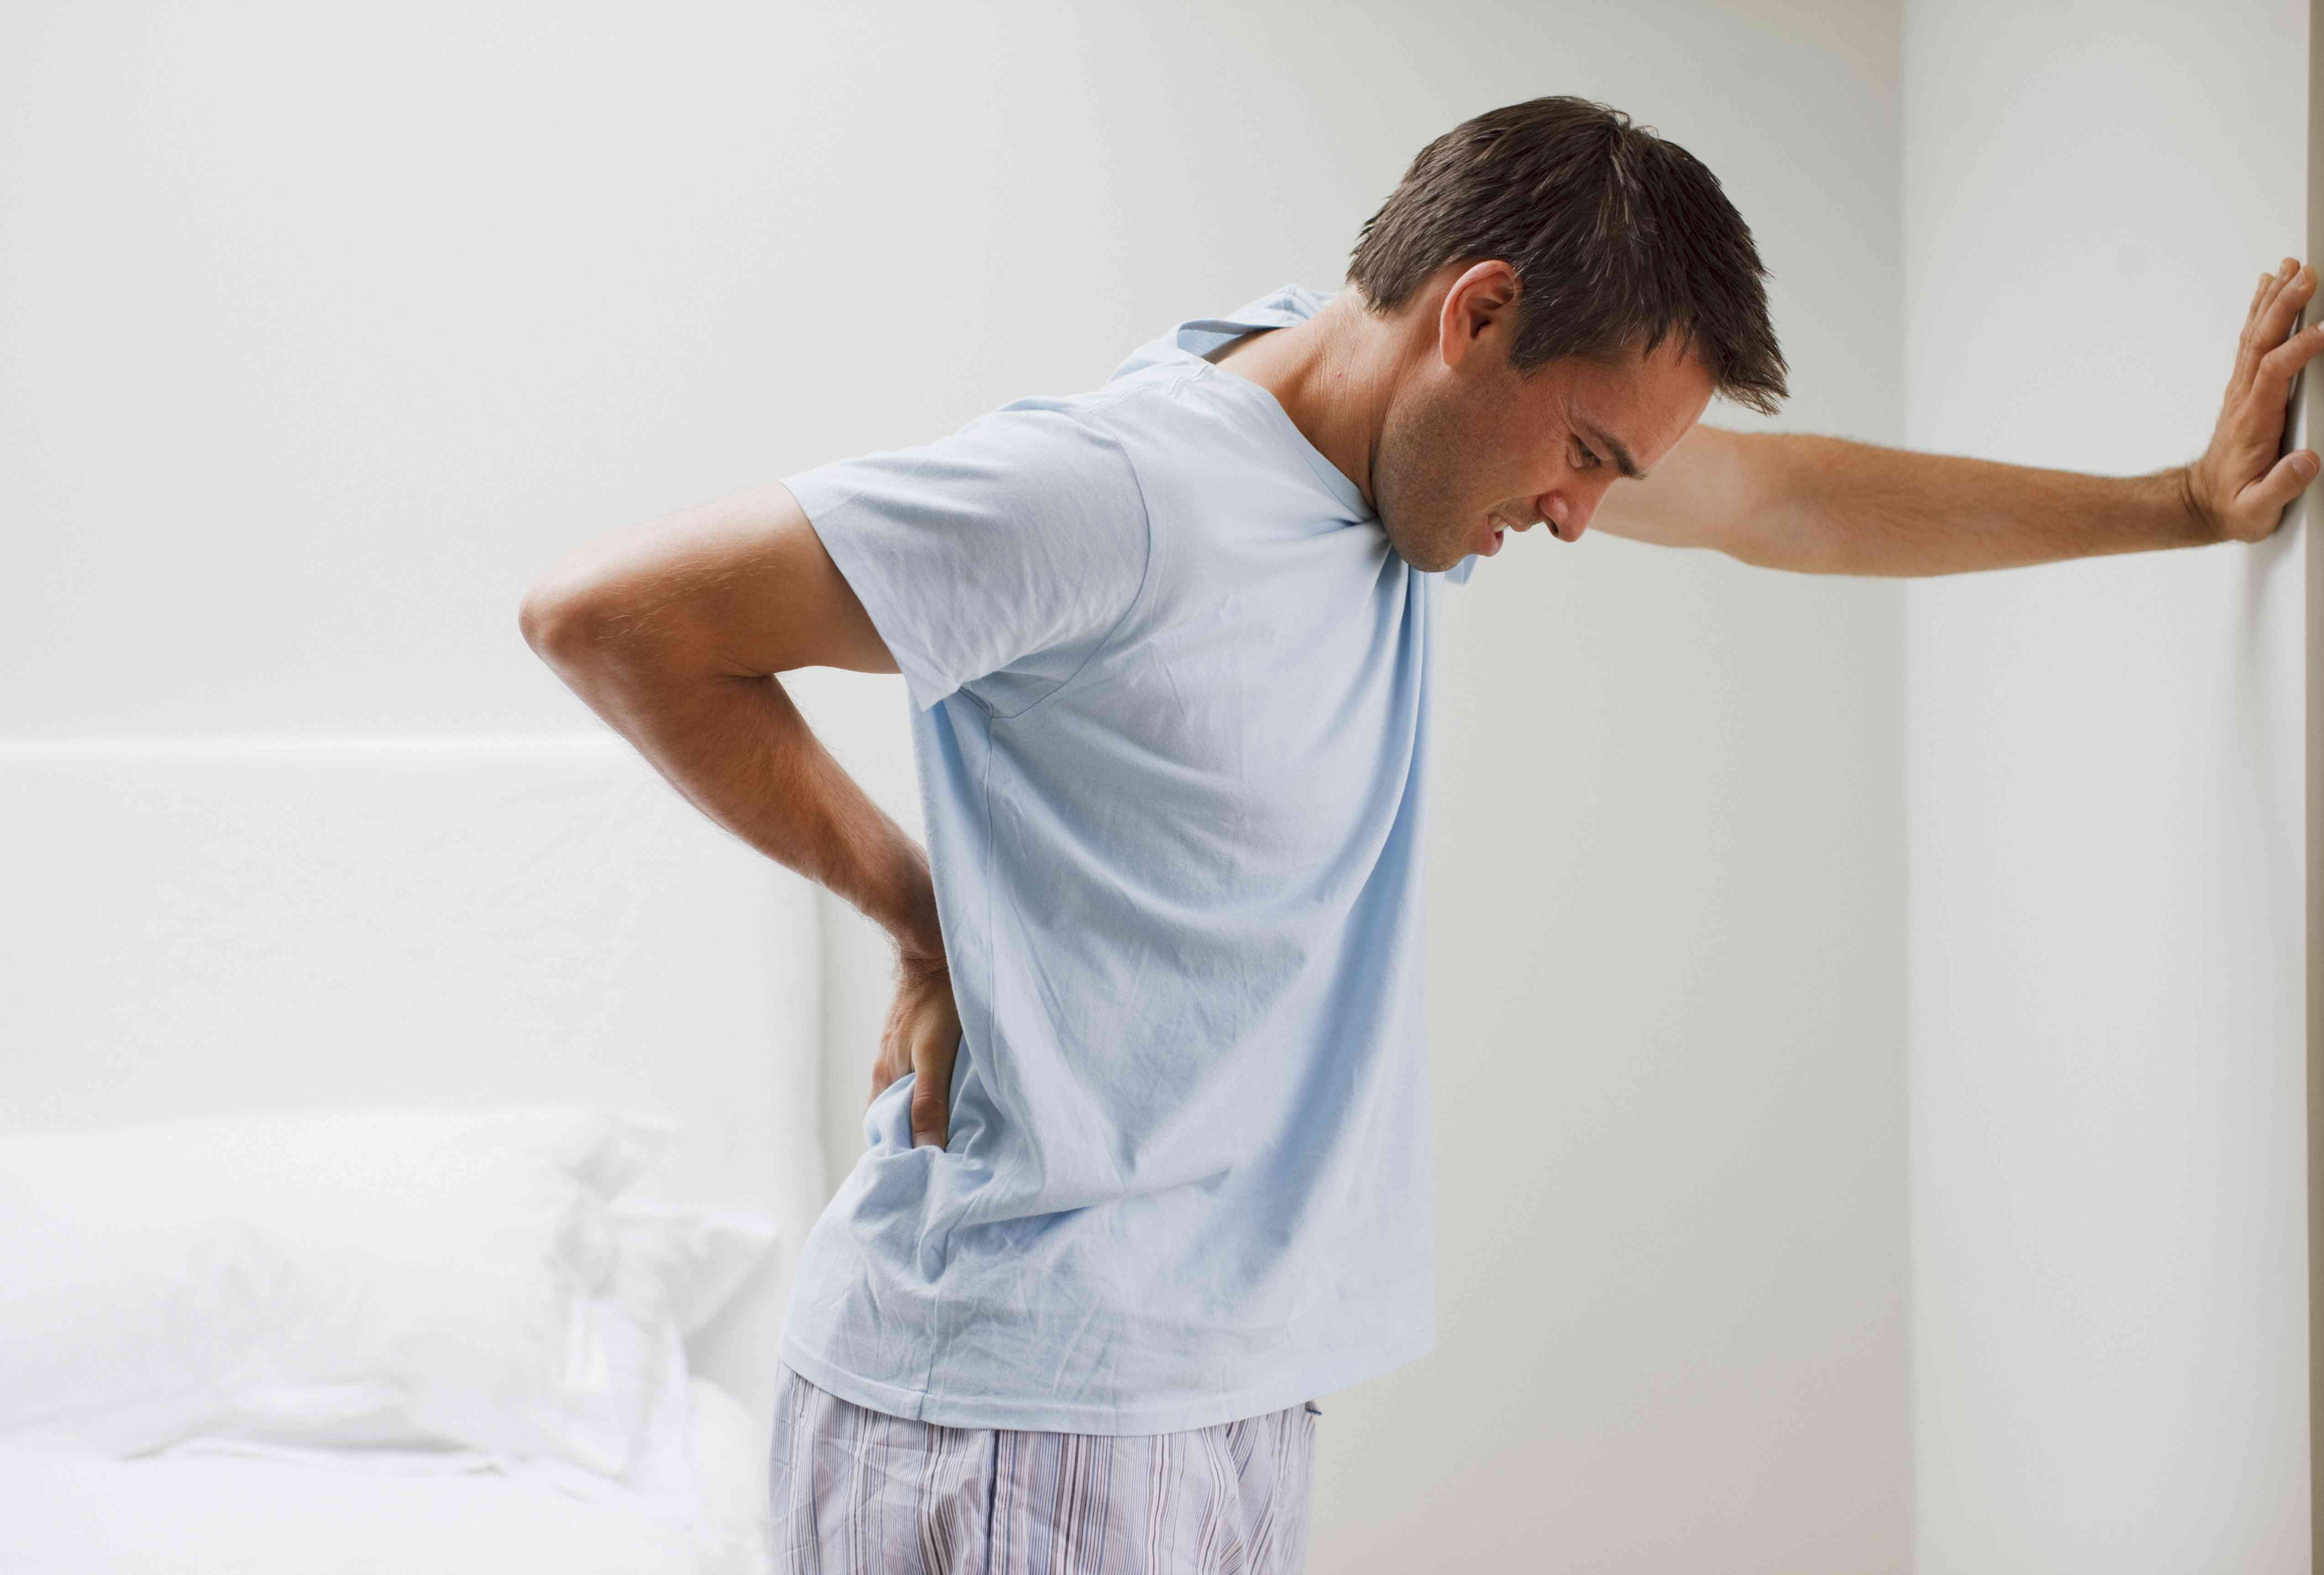 Man with back pain leaning against a wall